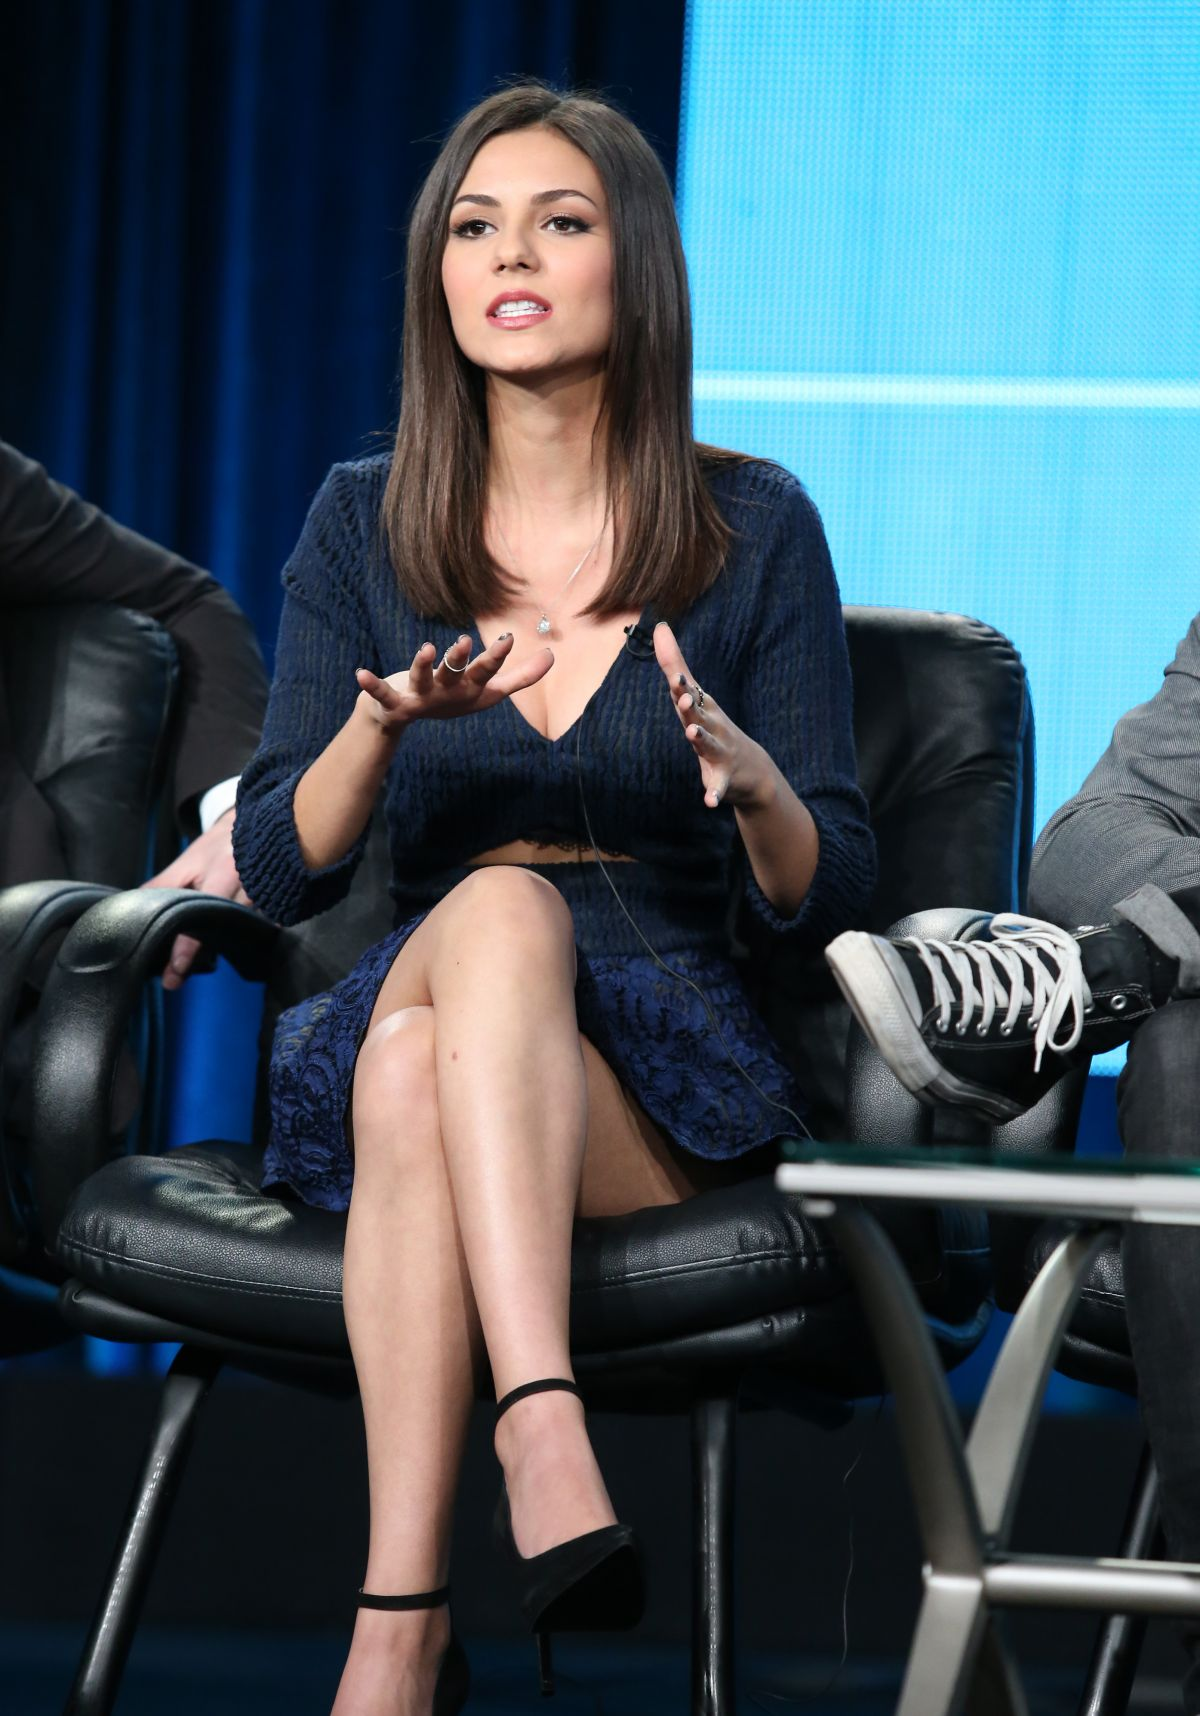 victoria-justice-at-eye-candy-panel-tca-